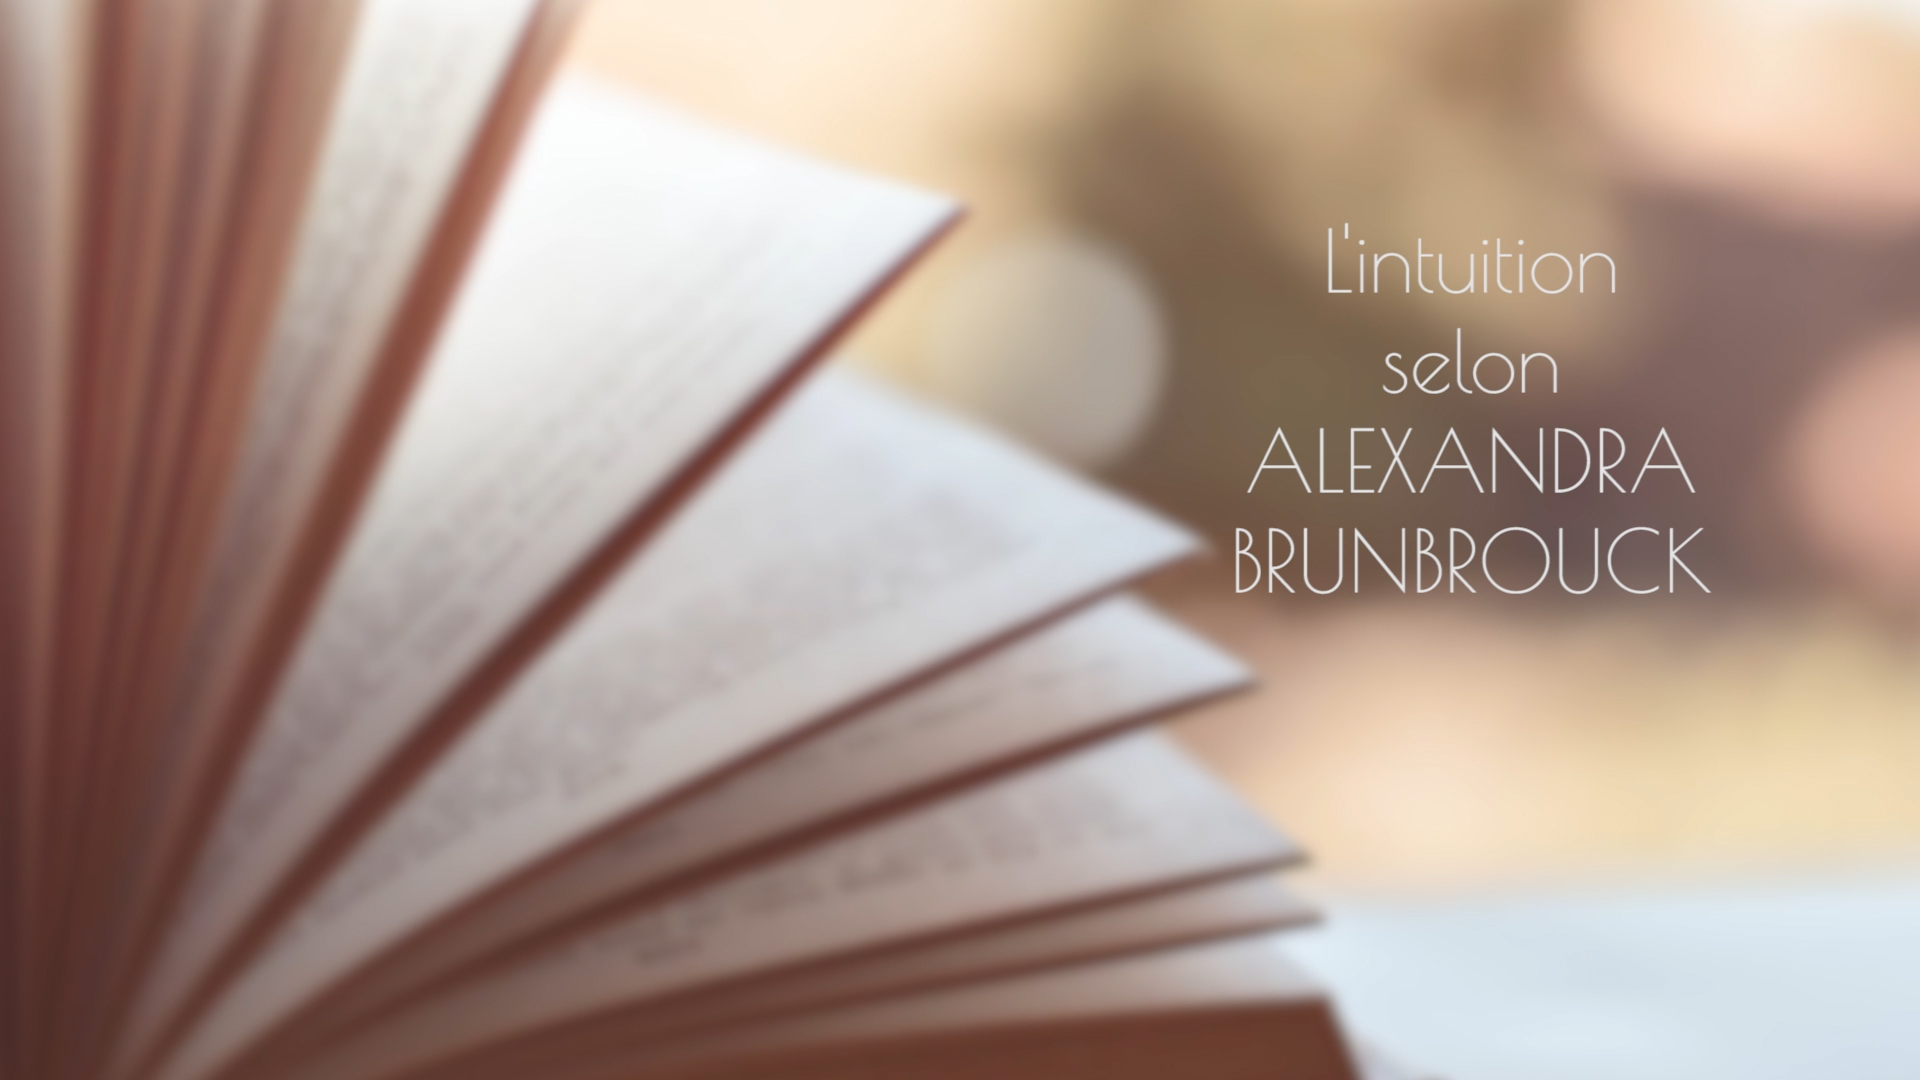 interview d'Alexandra Brunbrouck sur l'intuition